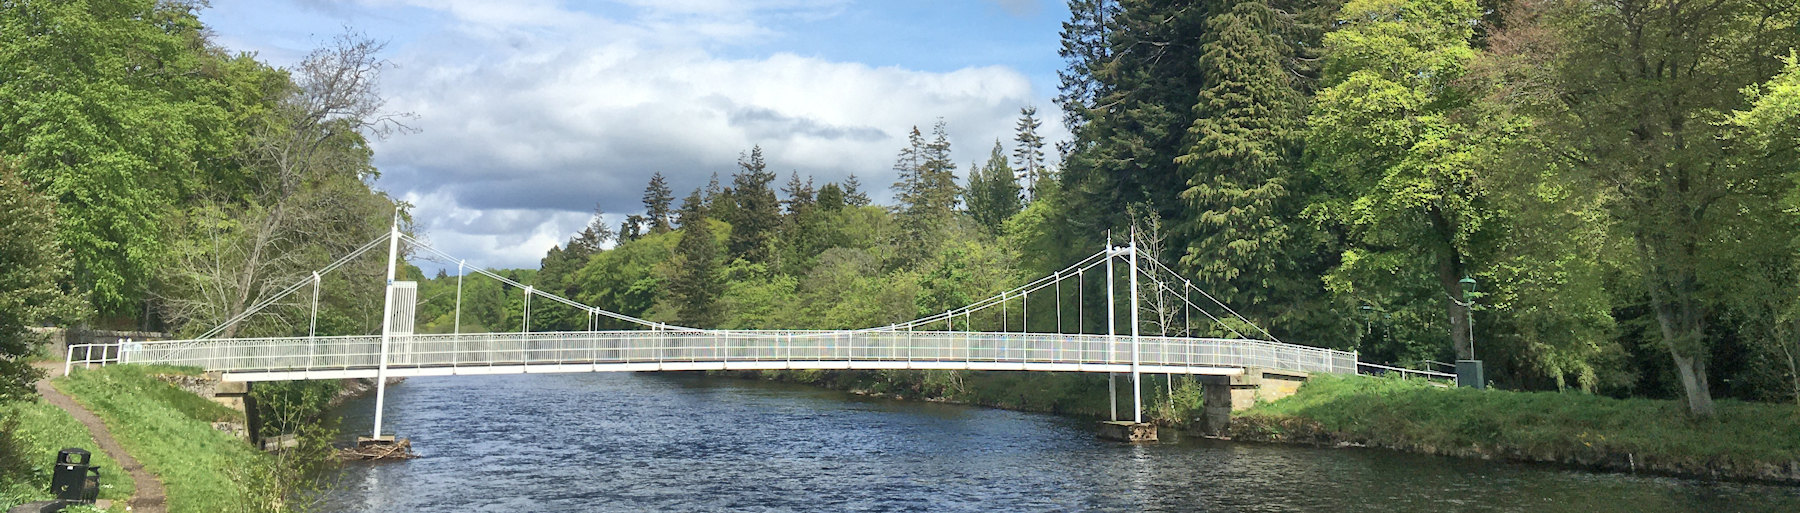 Bridge at the Ness Islands, Inverness